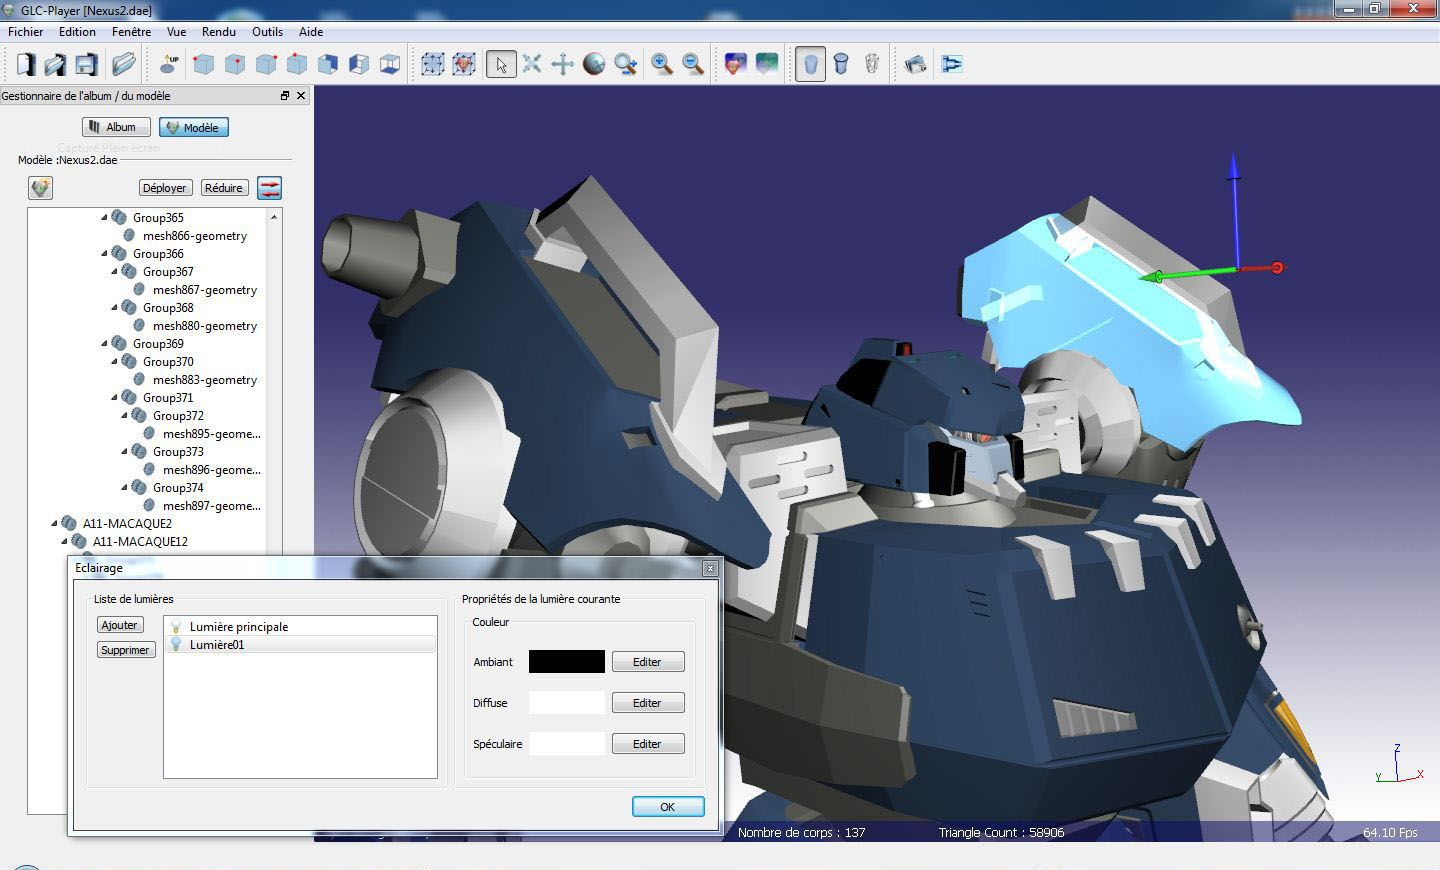 GLC_Player STL viewing and modeling software